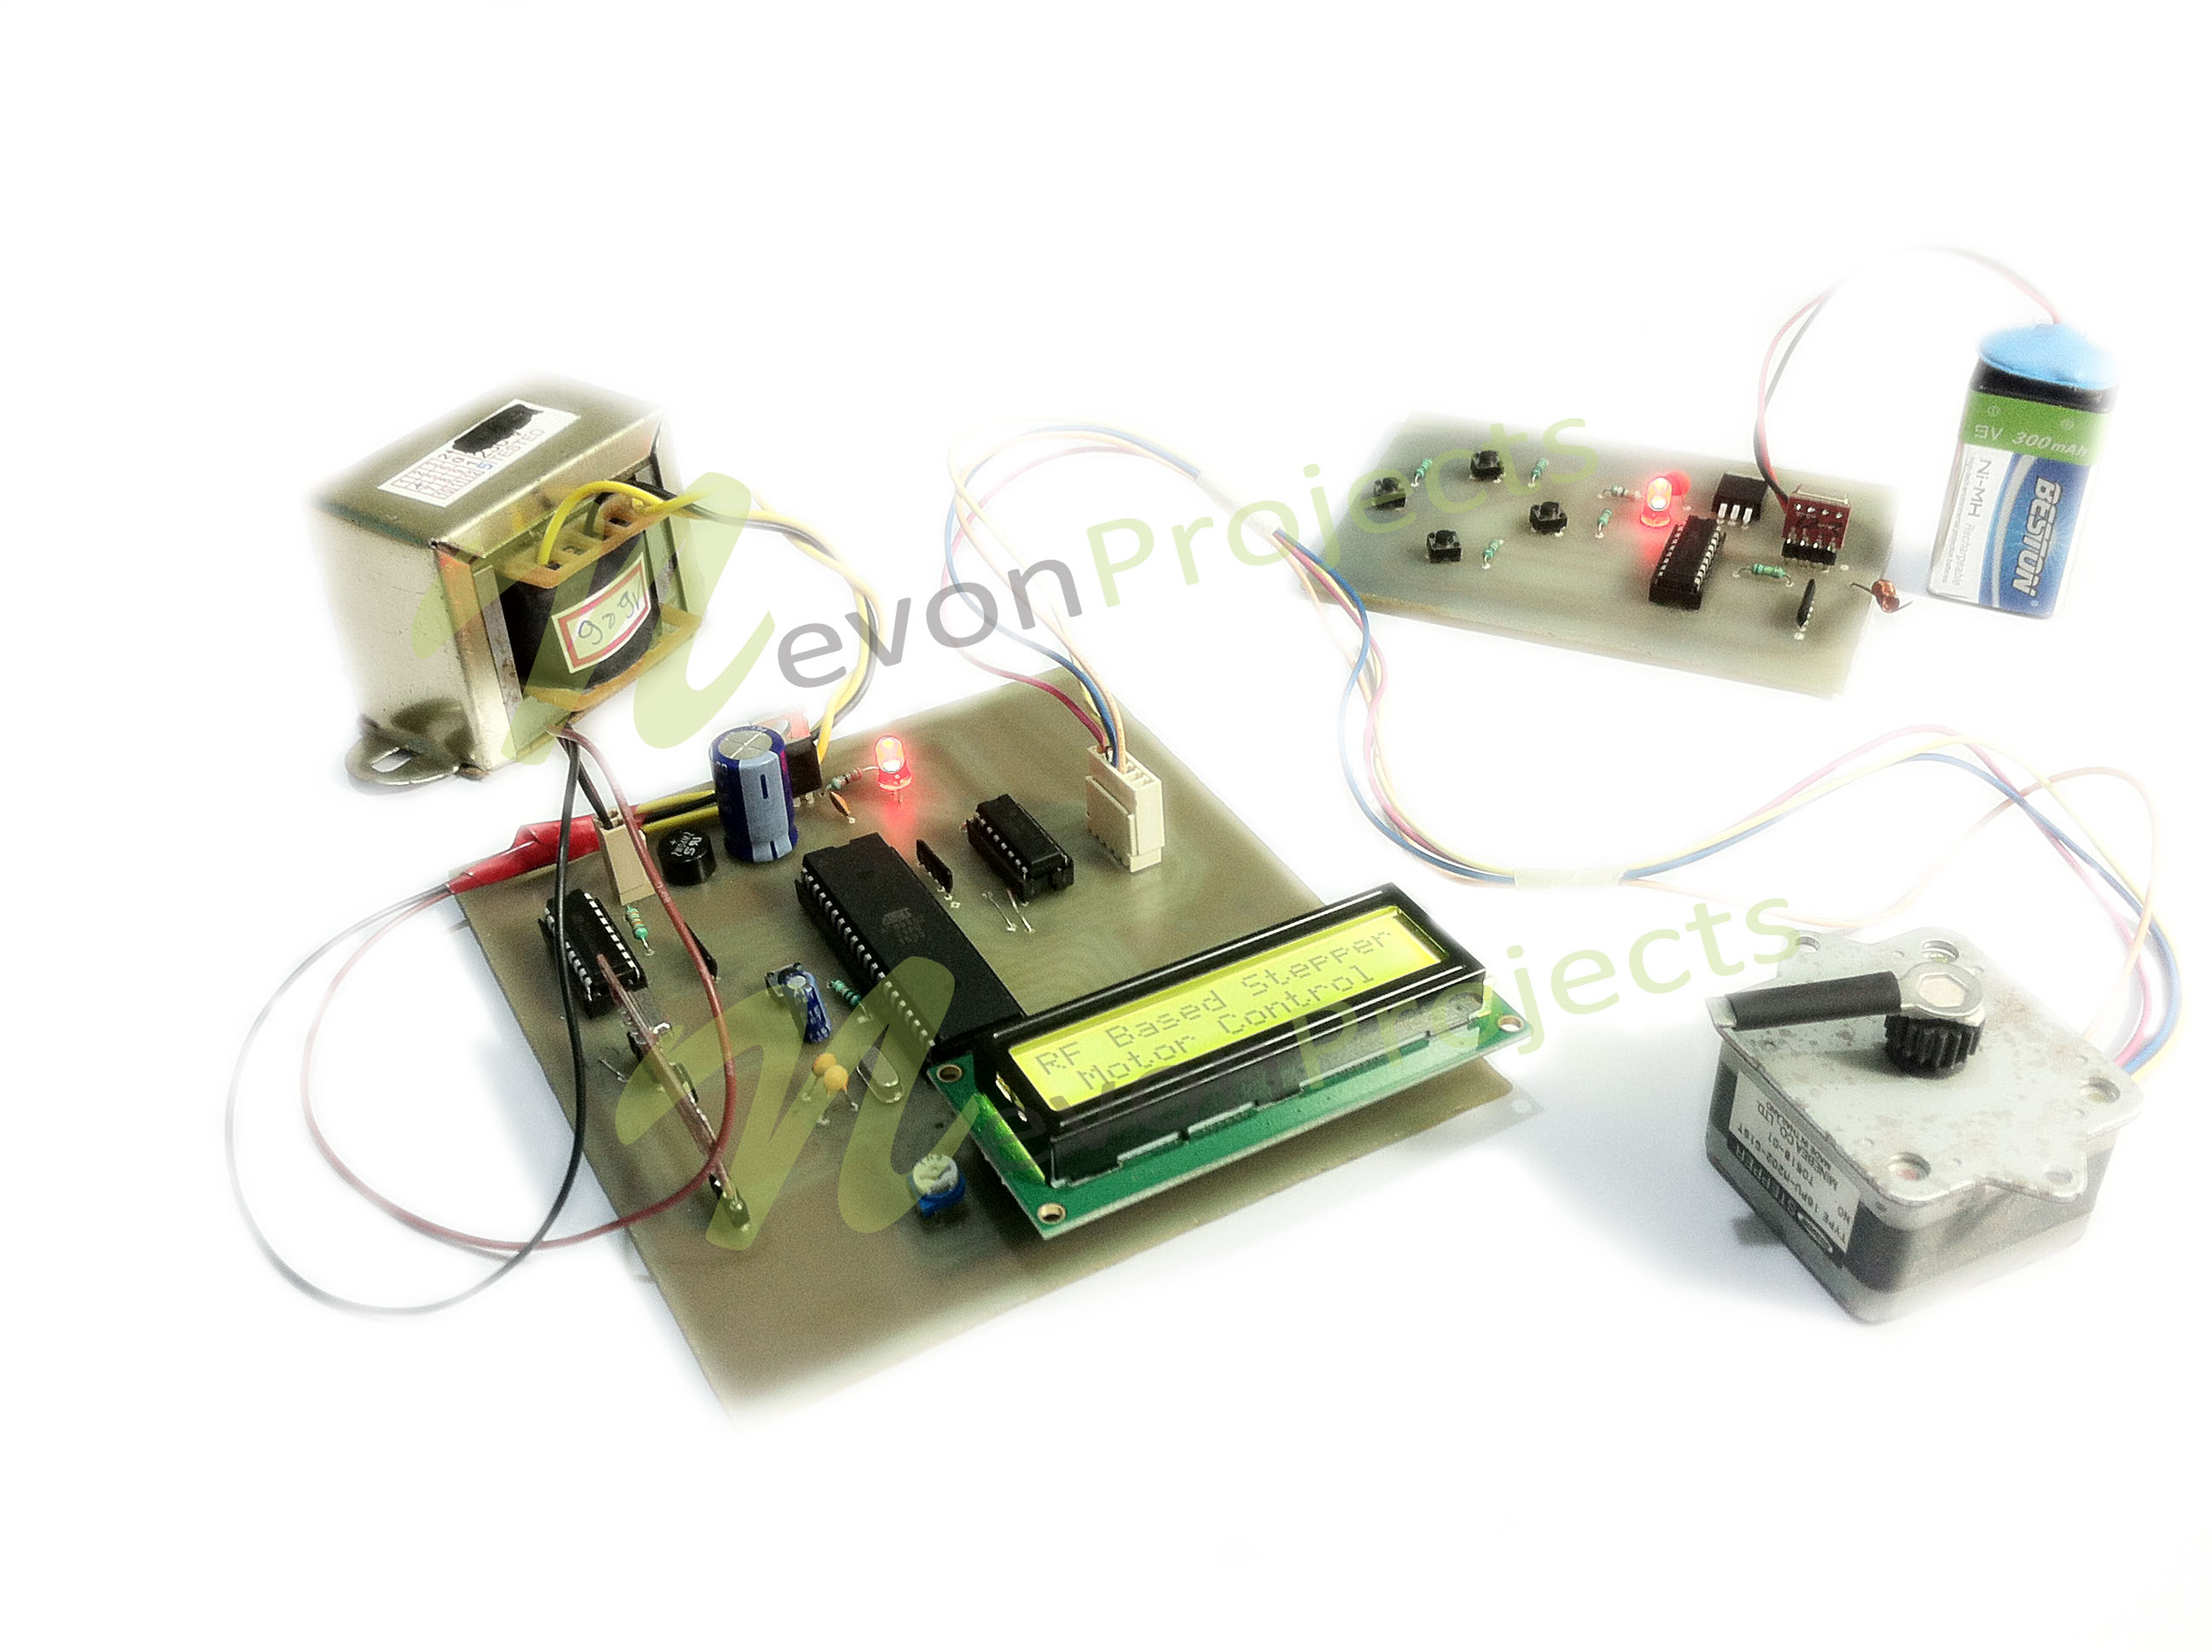 remote stepper motor controller project nevonprojects